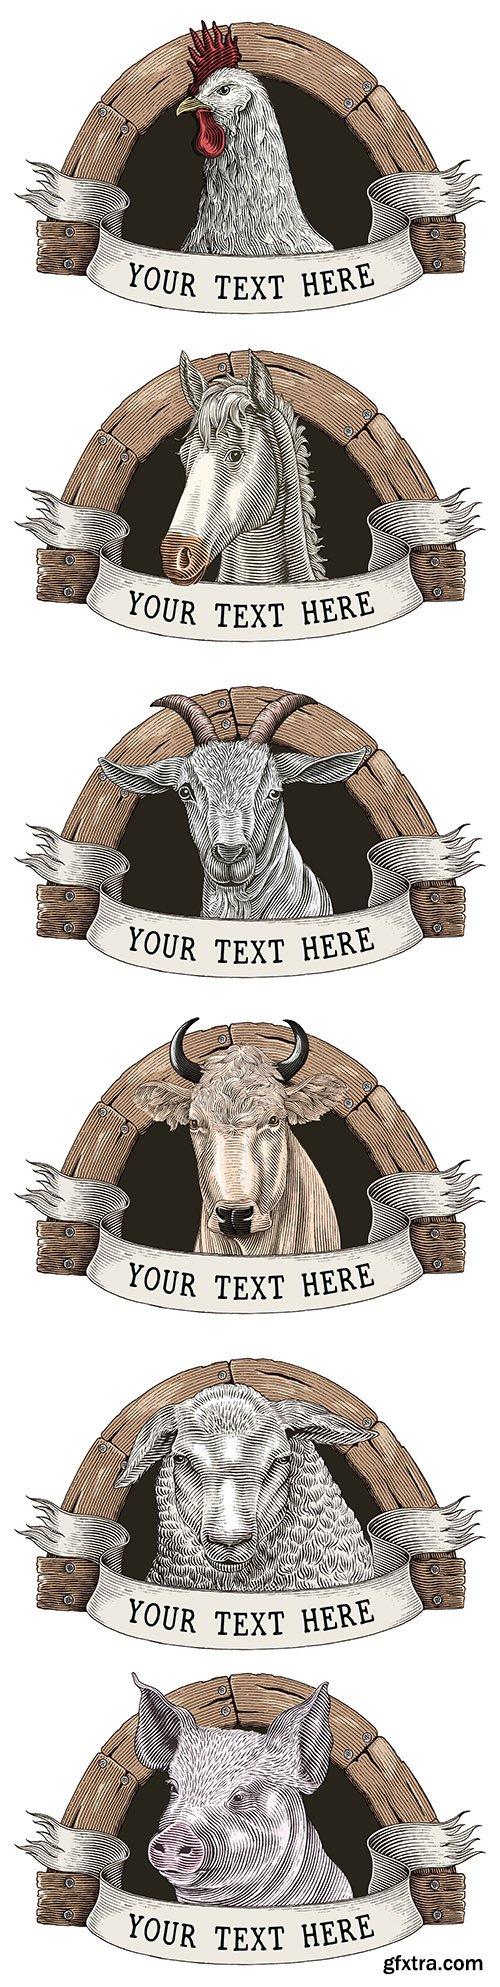 Farm animal logo design ancient engravings style